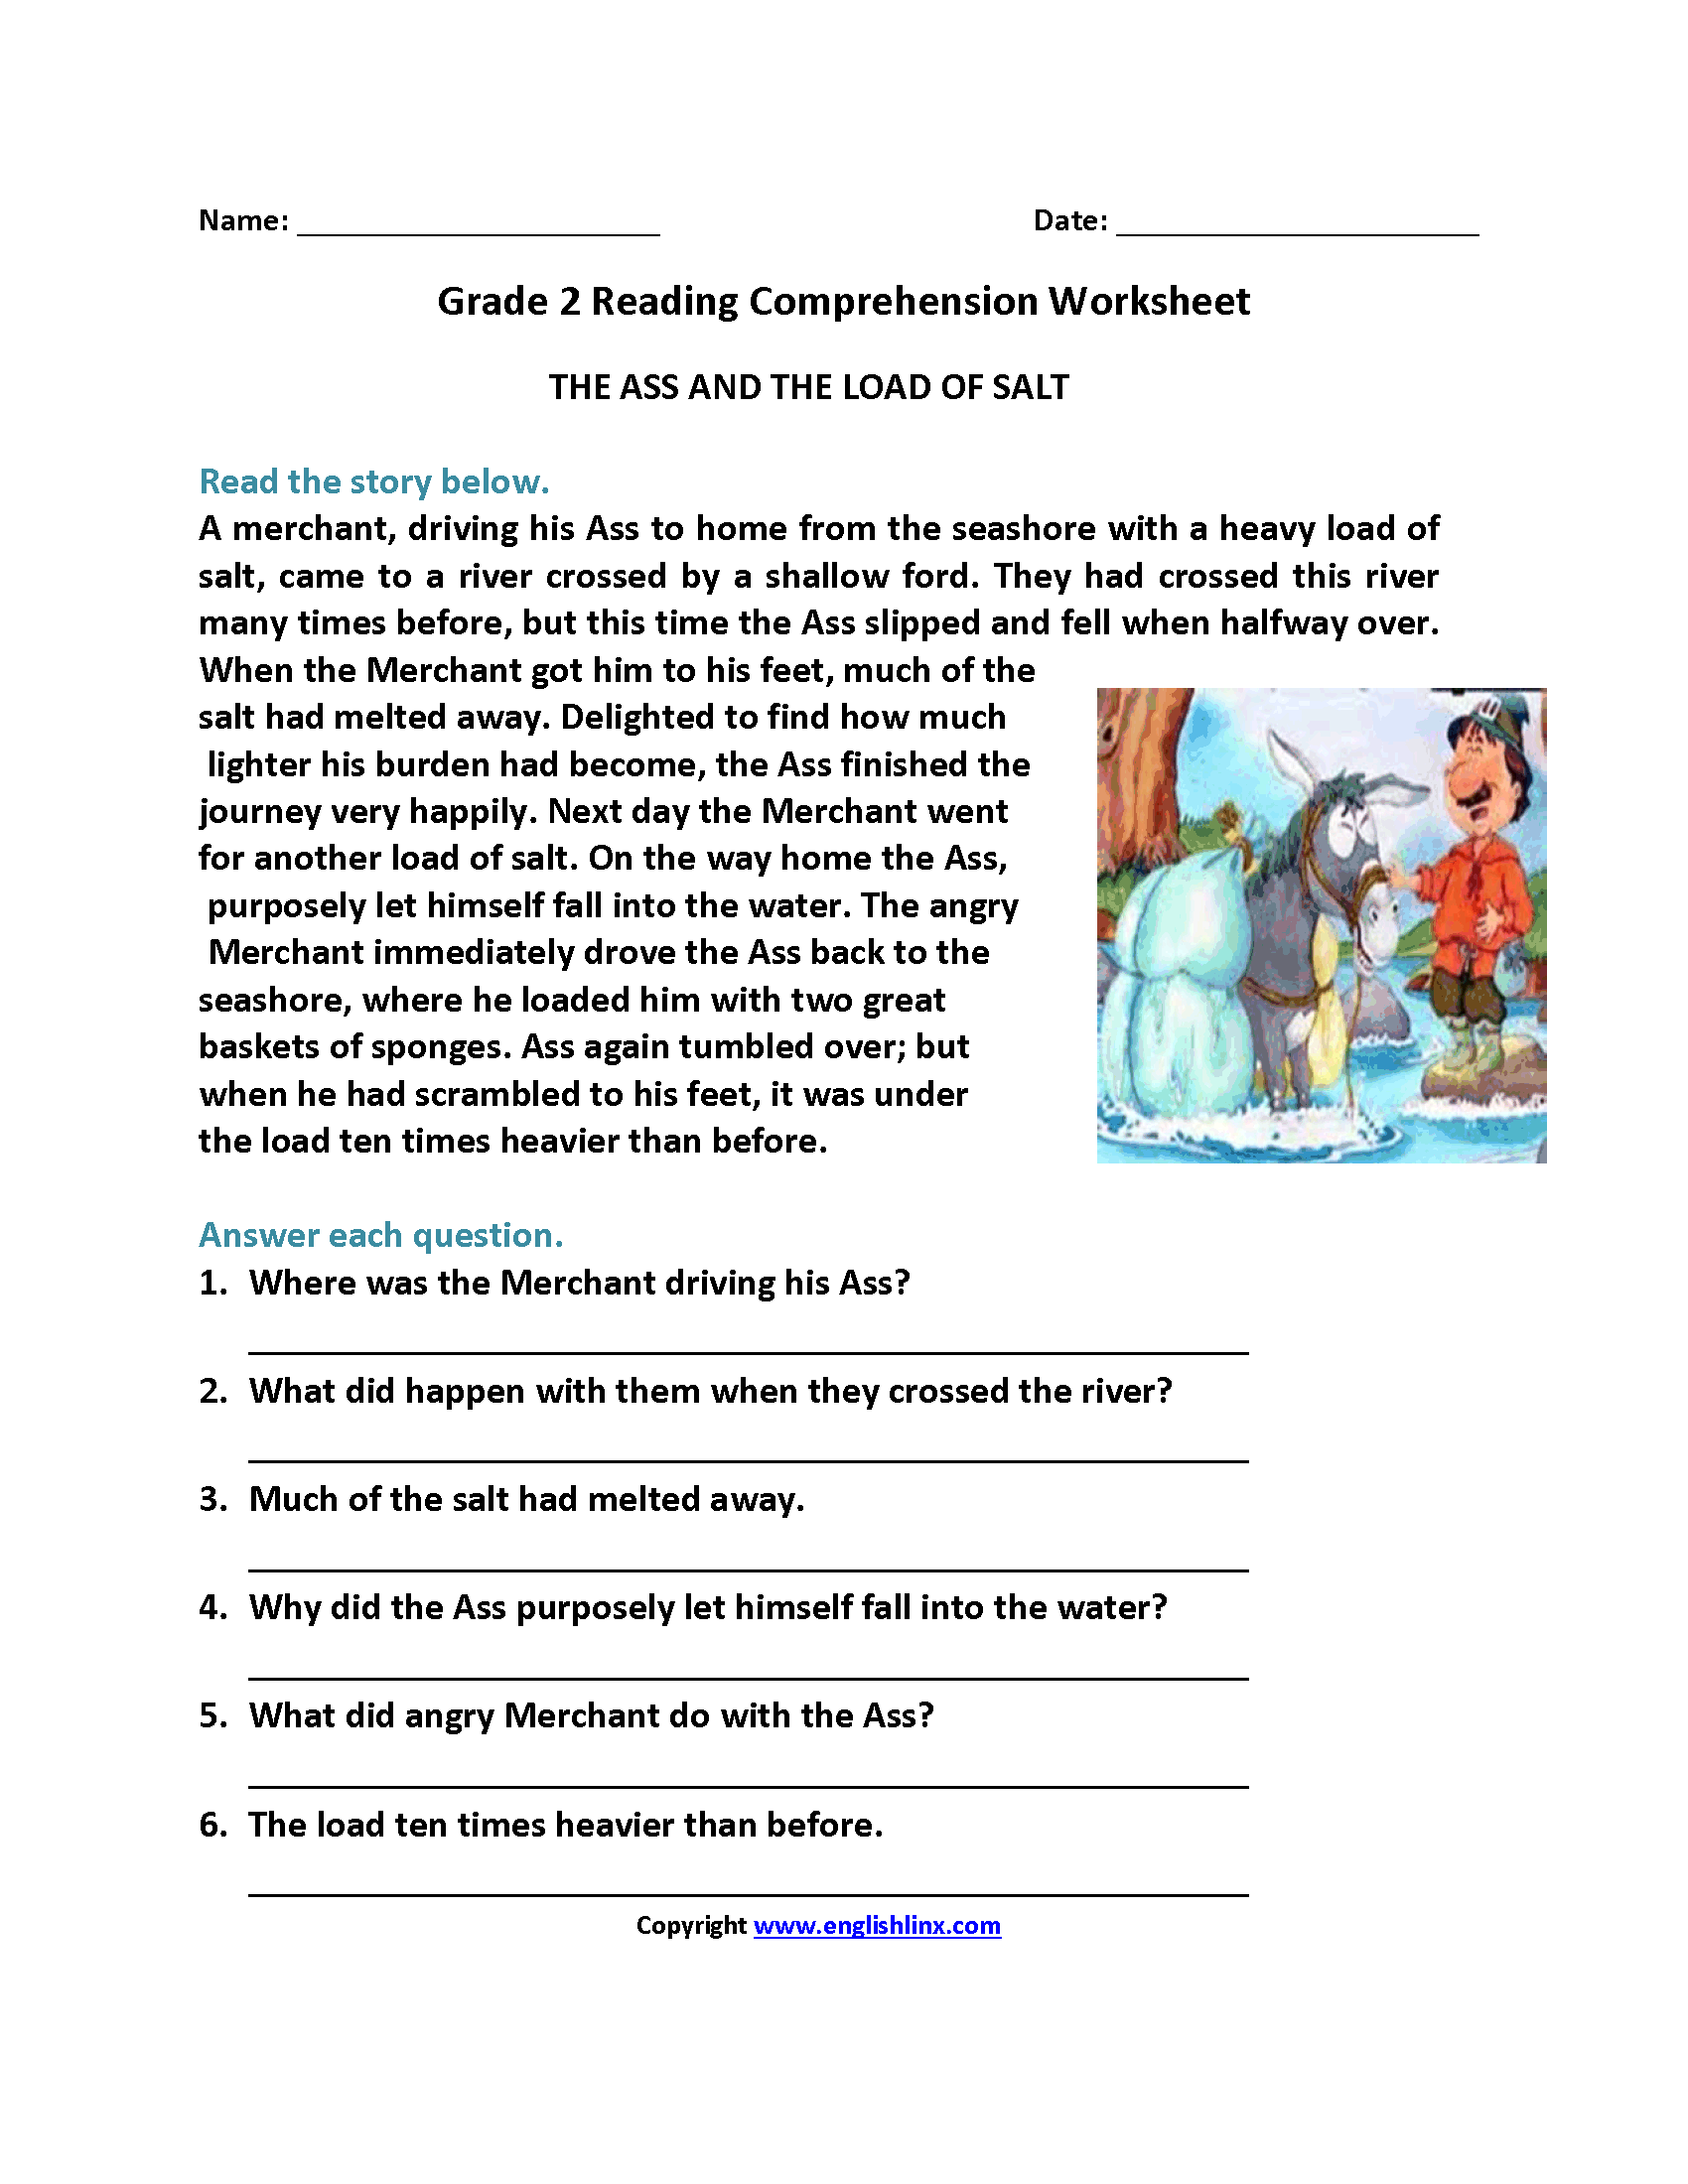 Worksheets Comprehension Worksheets Grade 2 ass and load of salt second grade reading worksheets worksheets